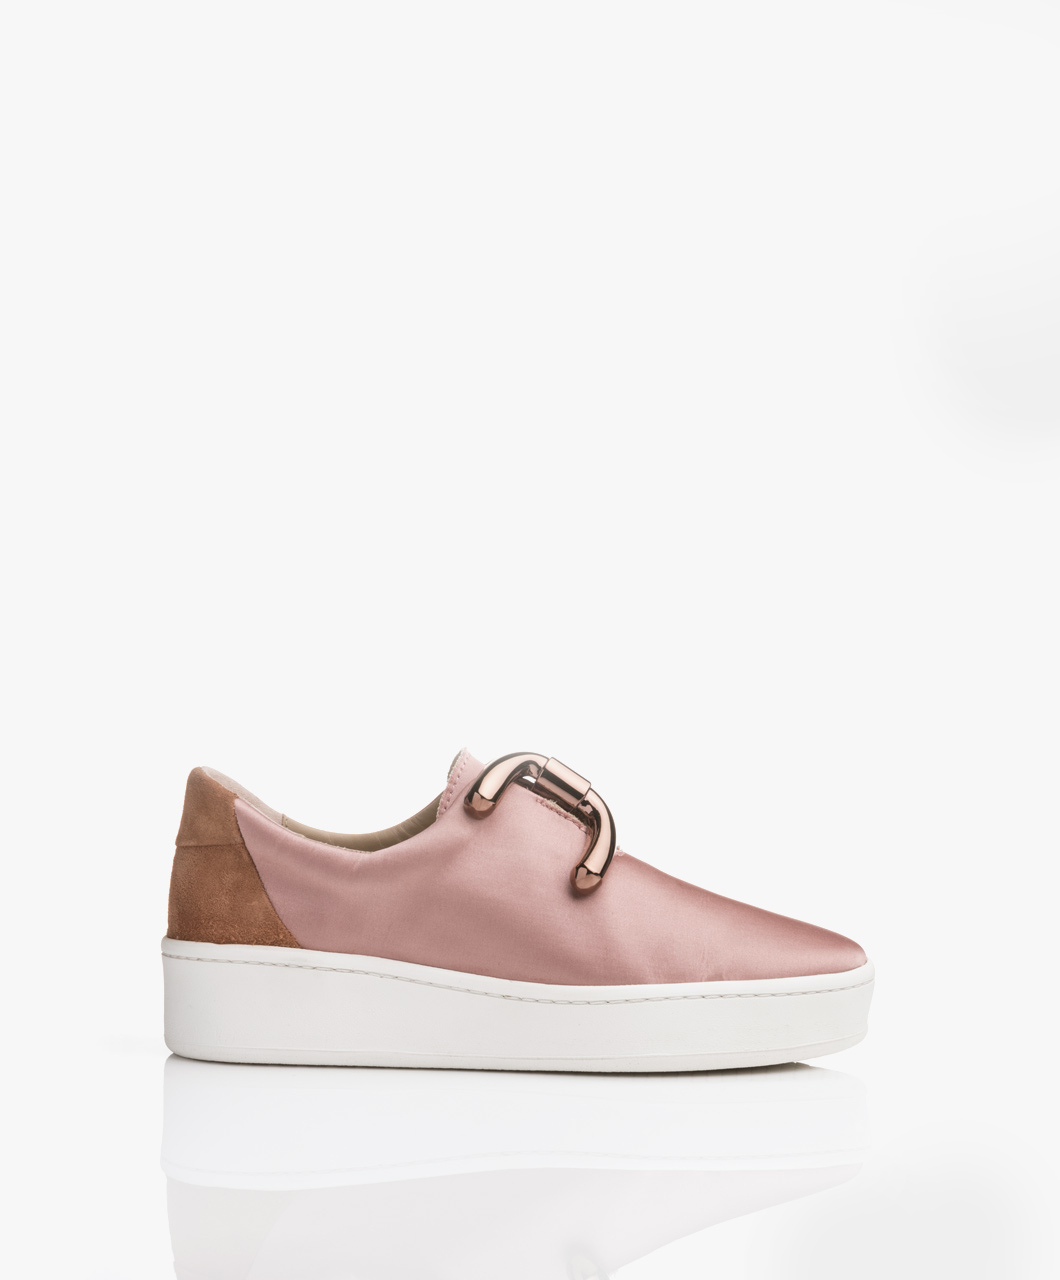 Afbeelding van An Hour And A Shower Sneakers Knot Laag in Satin Brick Roze